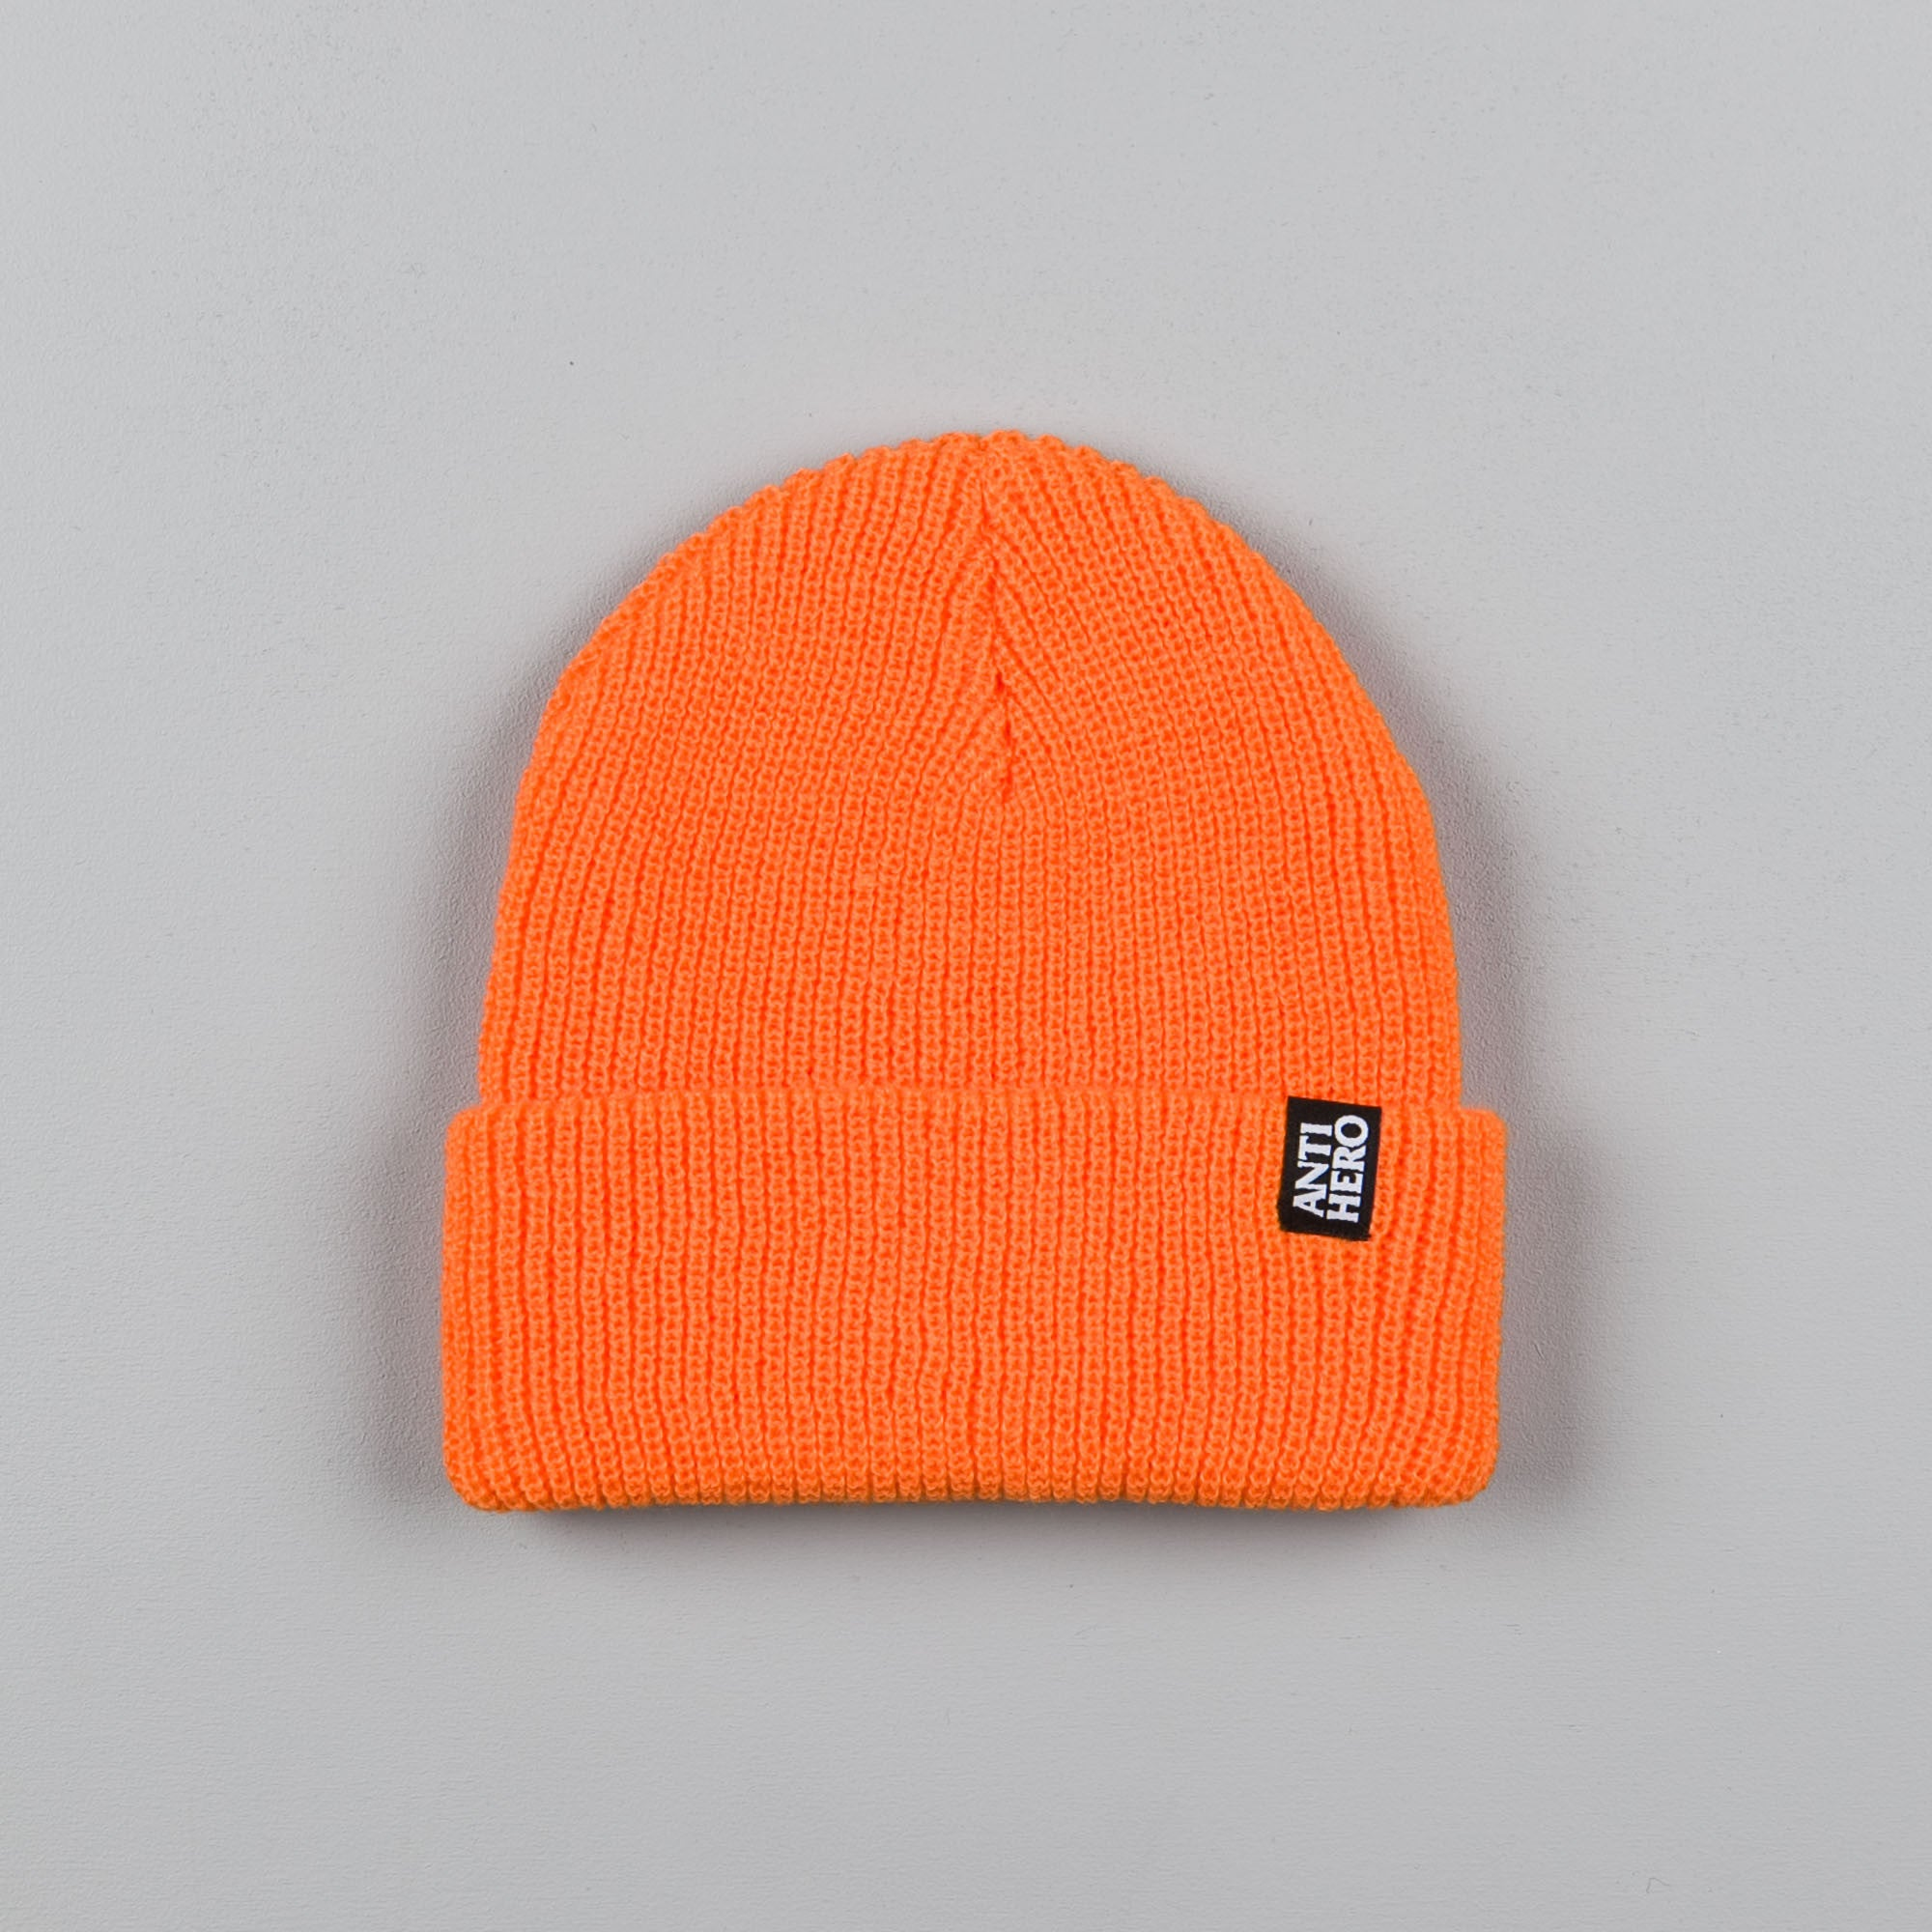 Anti Hero Blackhero Beanie - Orange